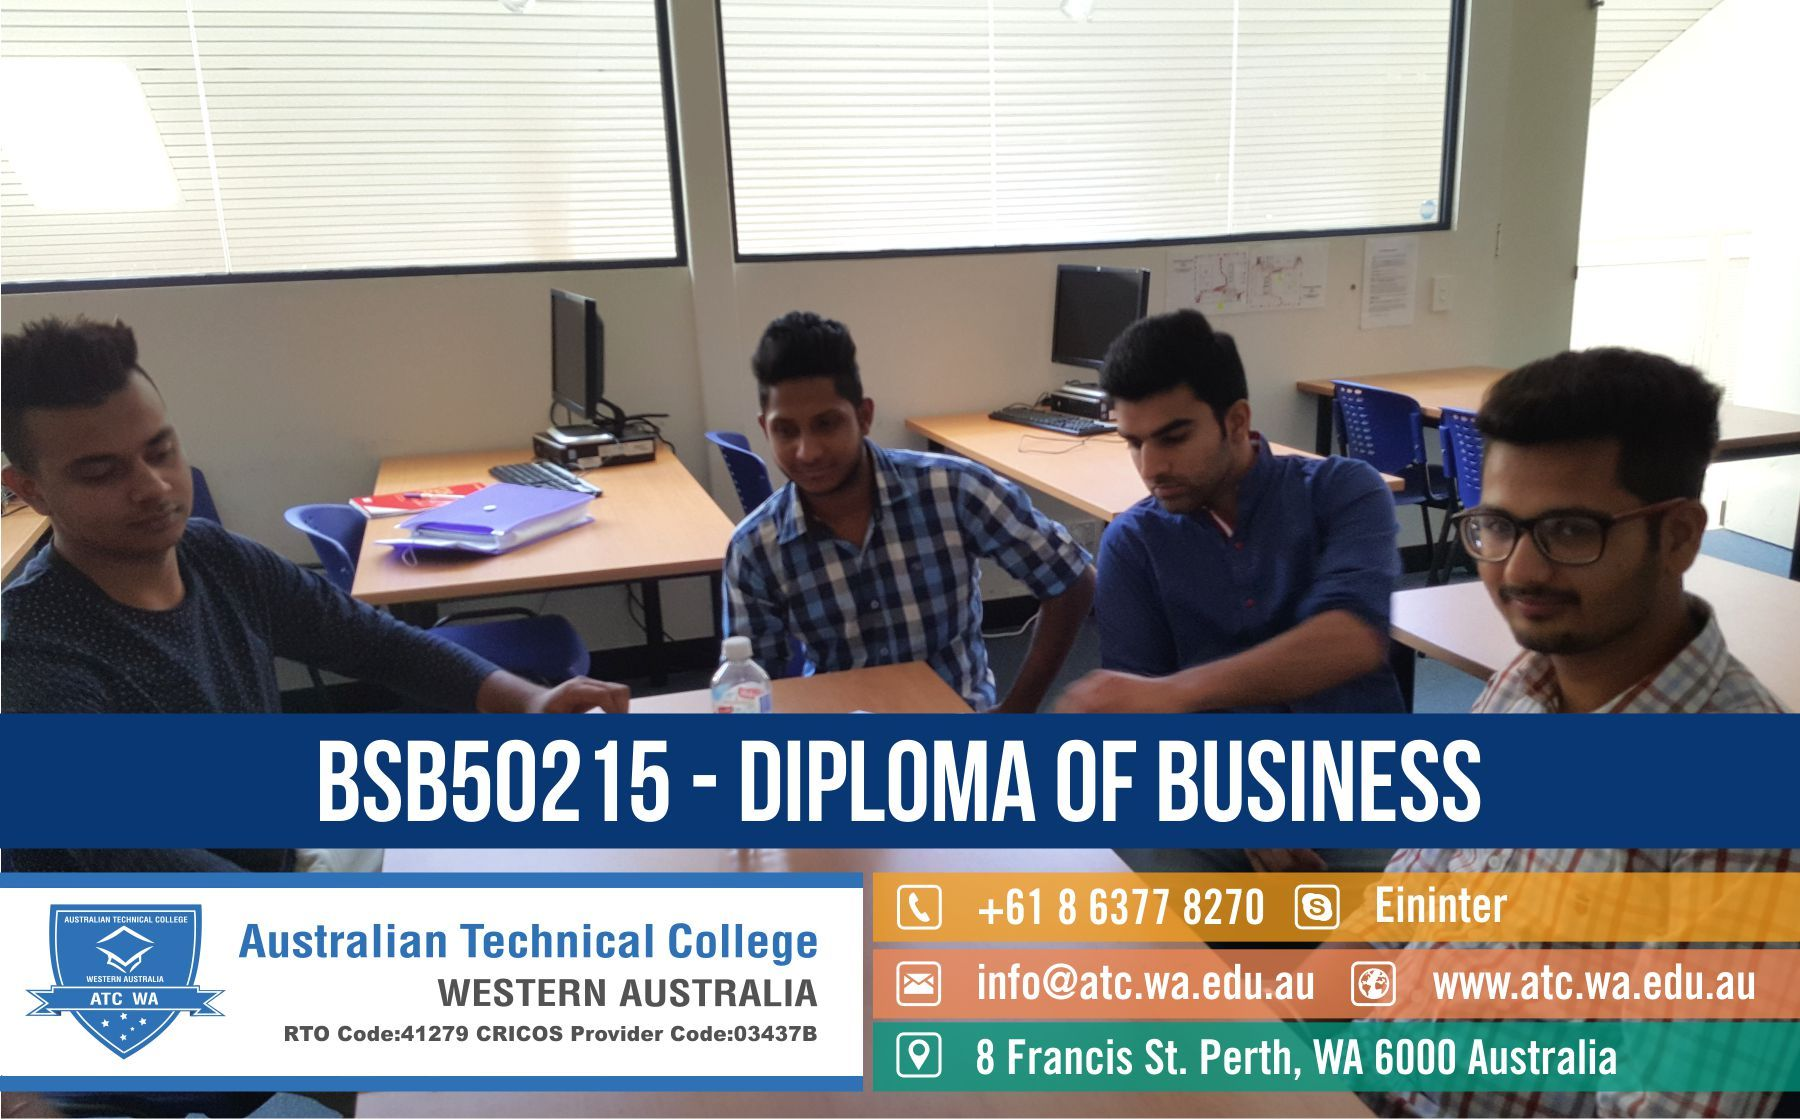 Diploma of business business courses colleges in